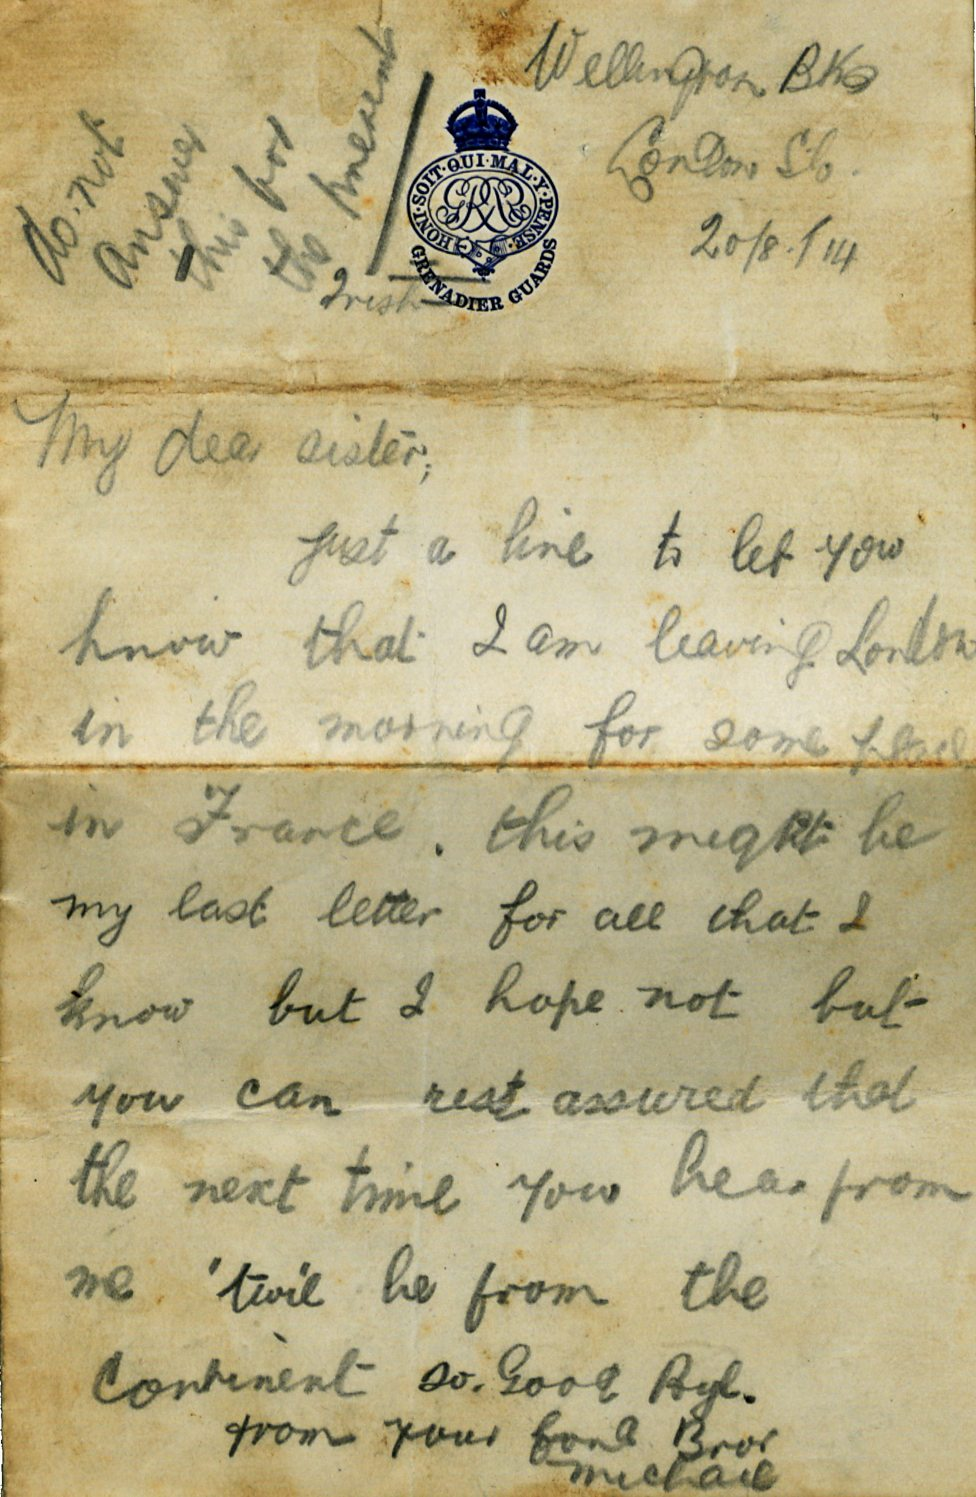 Michael Egan first page letter